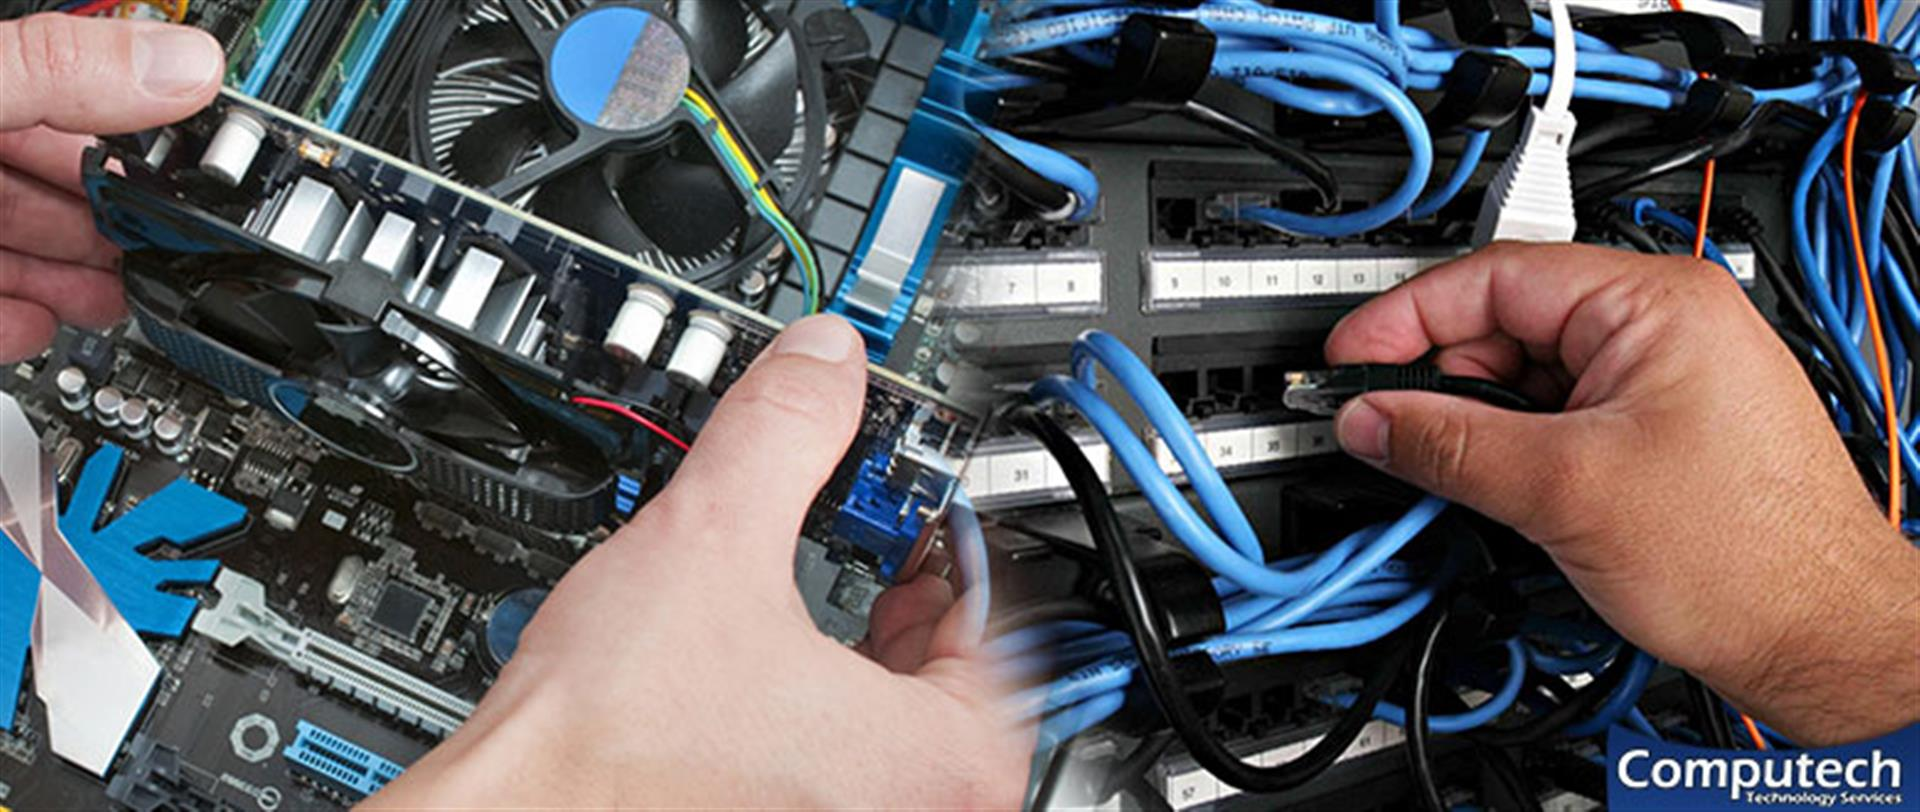 Richmond Hill Georgia On Site Computer & Printer Repairs, Networks, Voice & Data Cabling Services